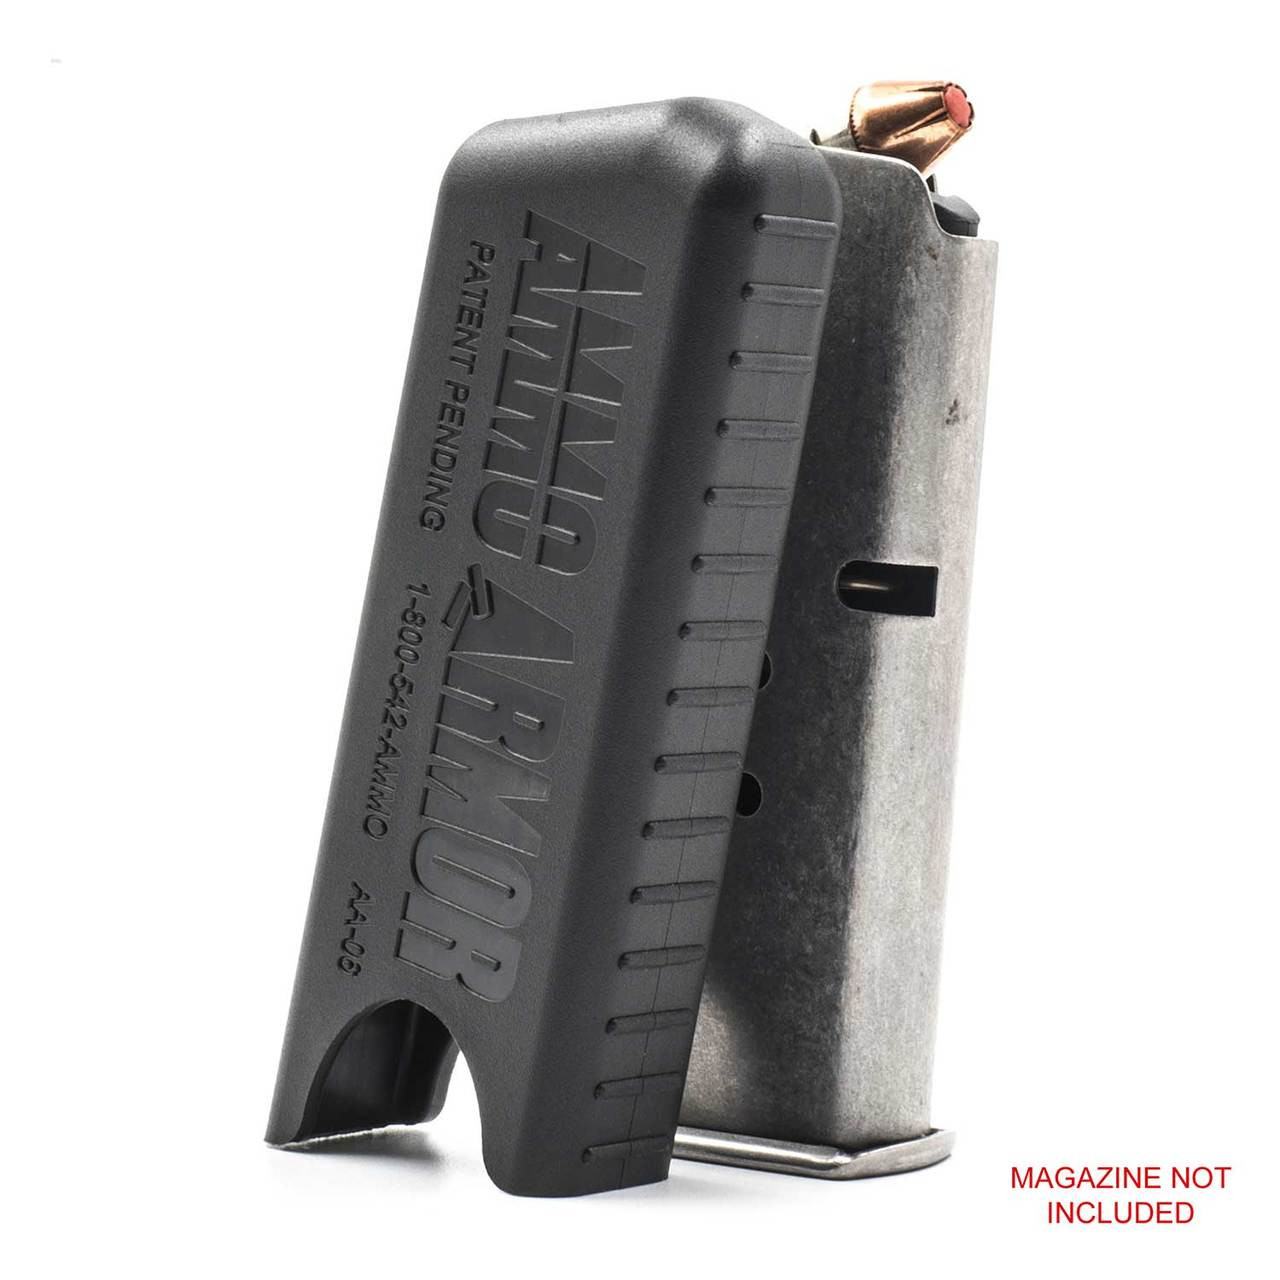 Ruger LCP Magazine Protector Magazine Protector